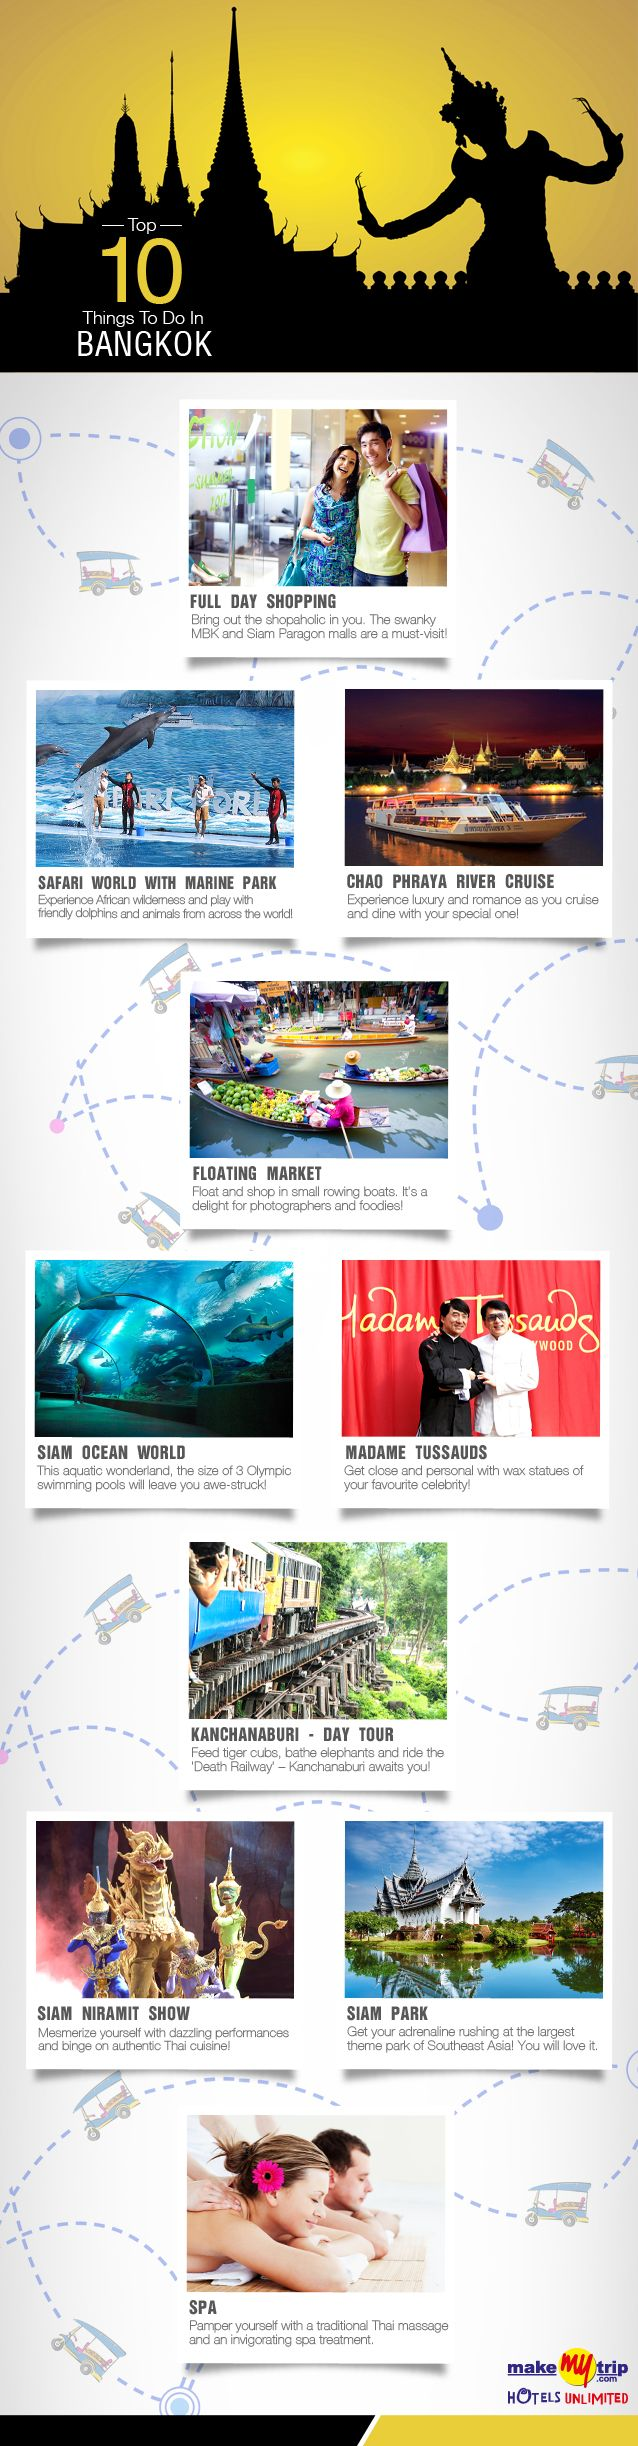 Things to do in Bangkok Infographic@Makymytrip.com